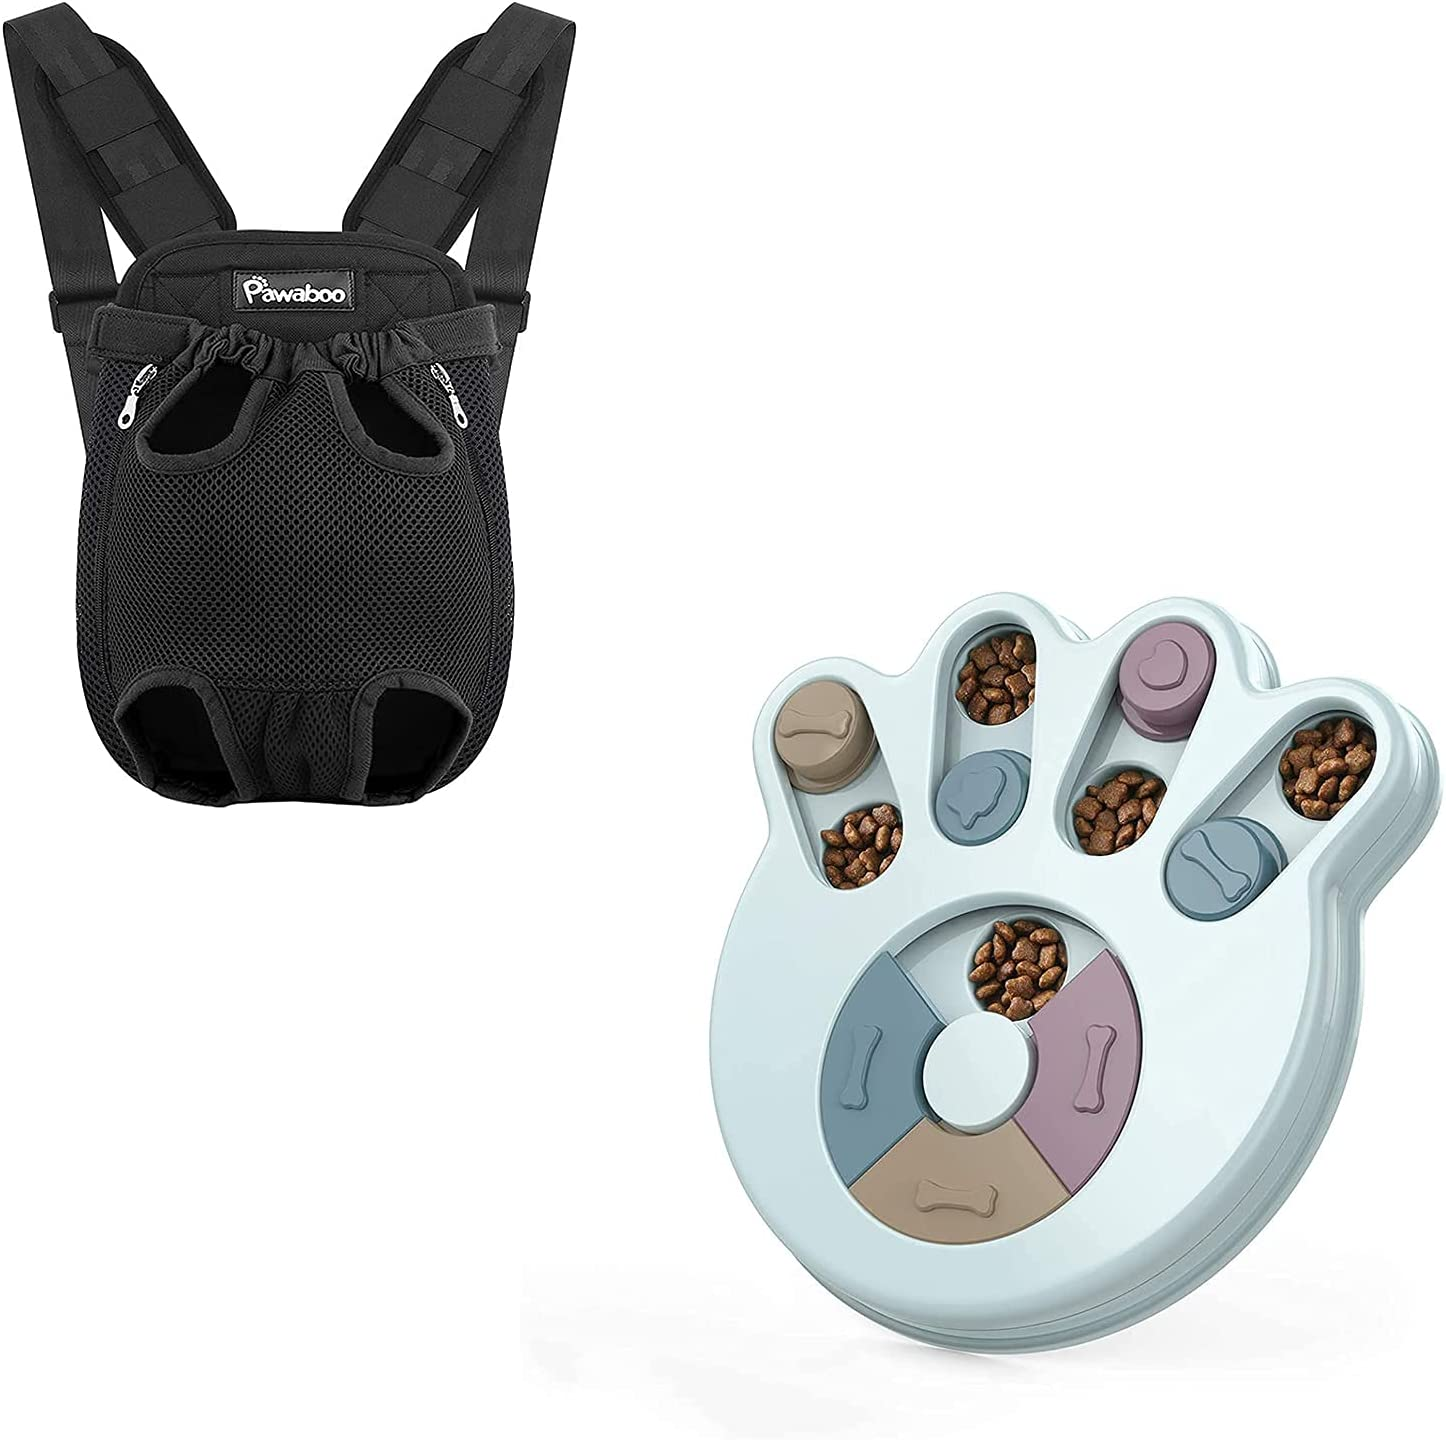 Pawaboo Pet Carrier Backpack M Toys Popular brand in the world Dog Puzzle Black lowest price Size